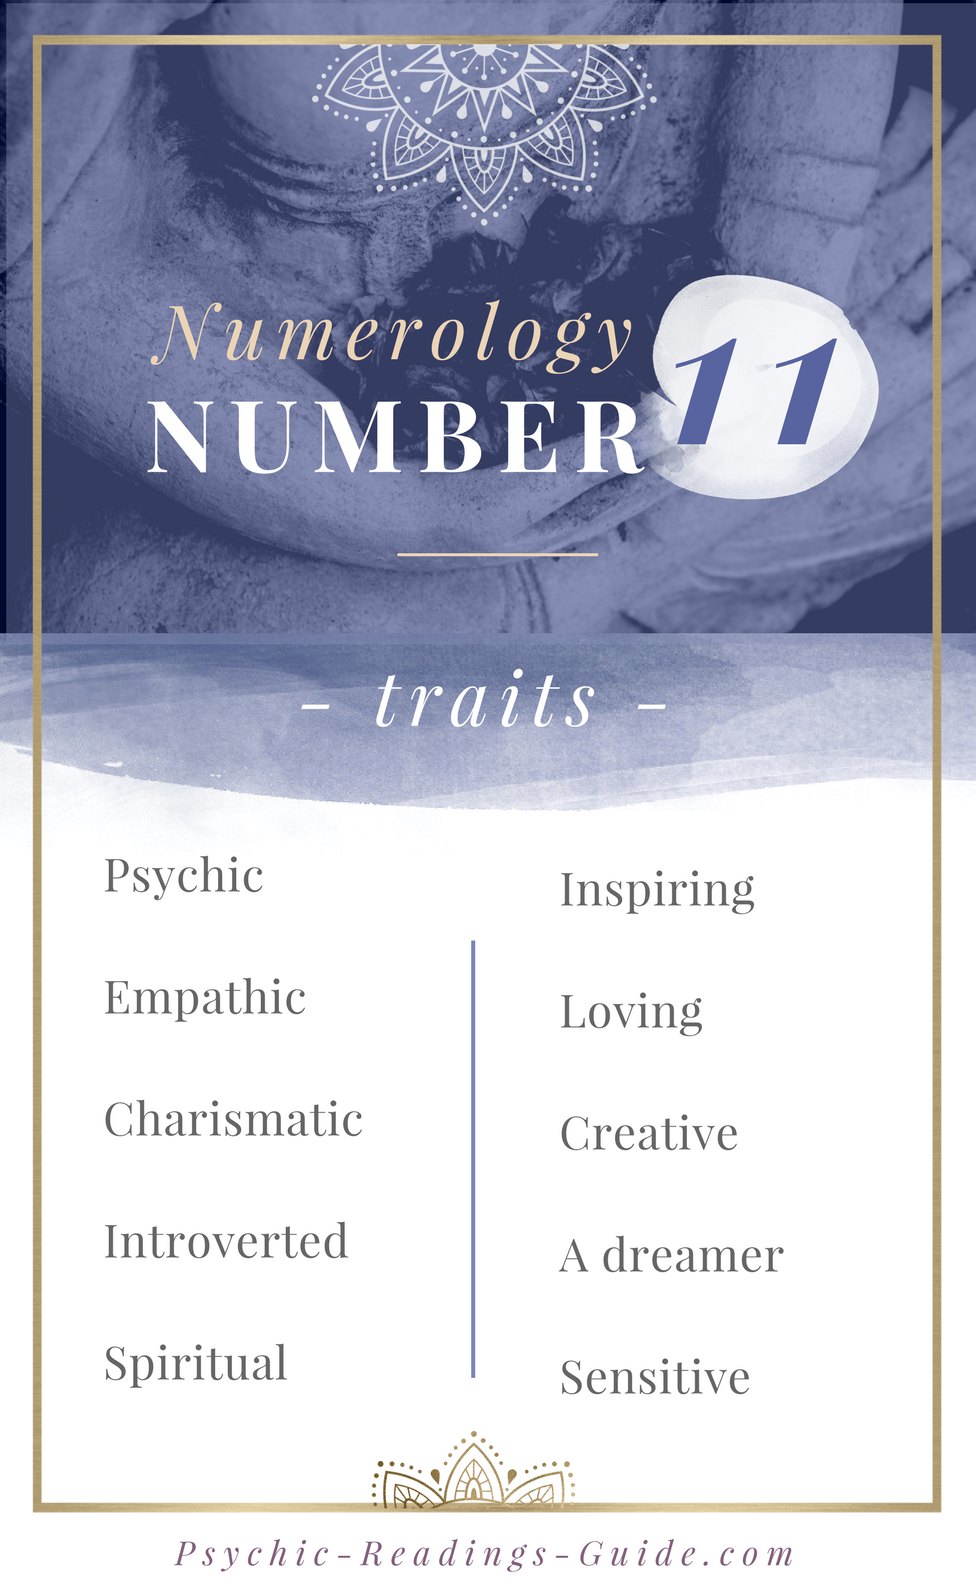 Master number number 11 Life Path